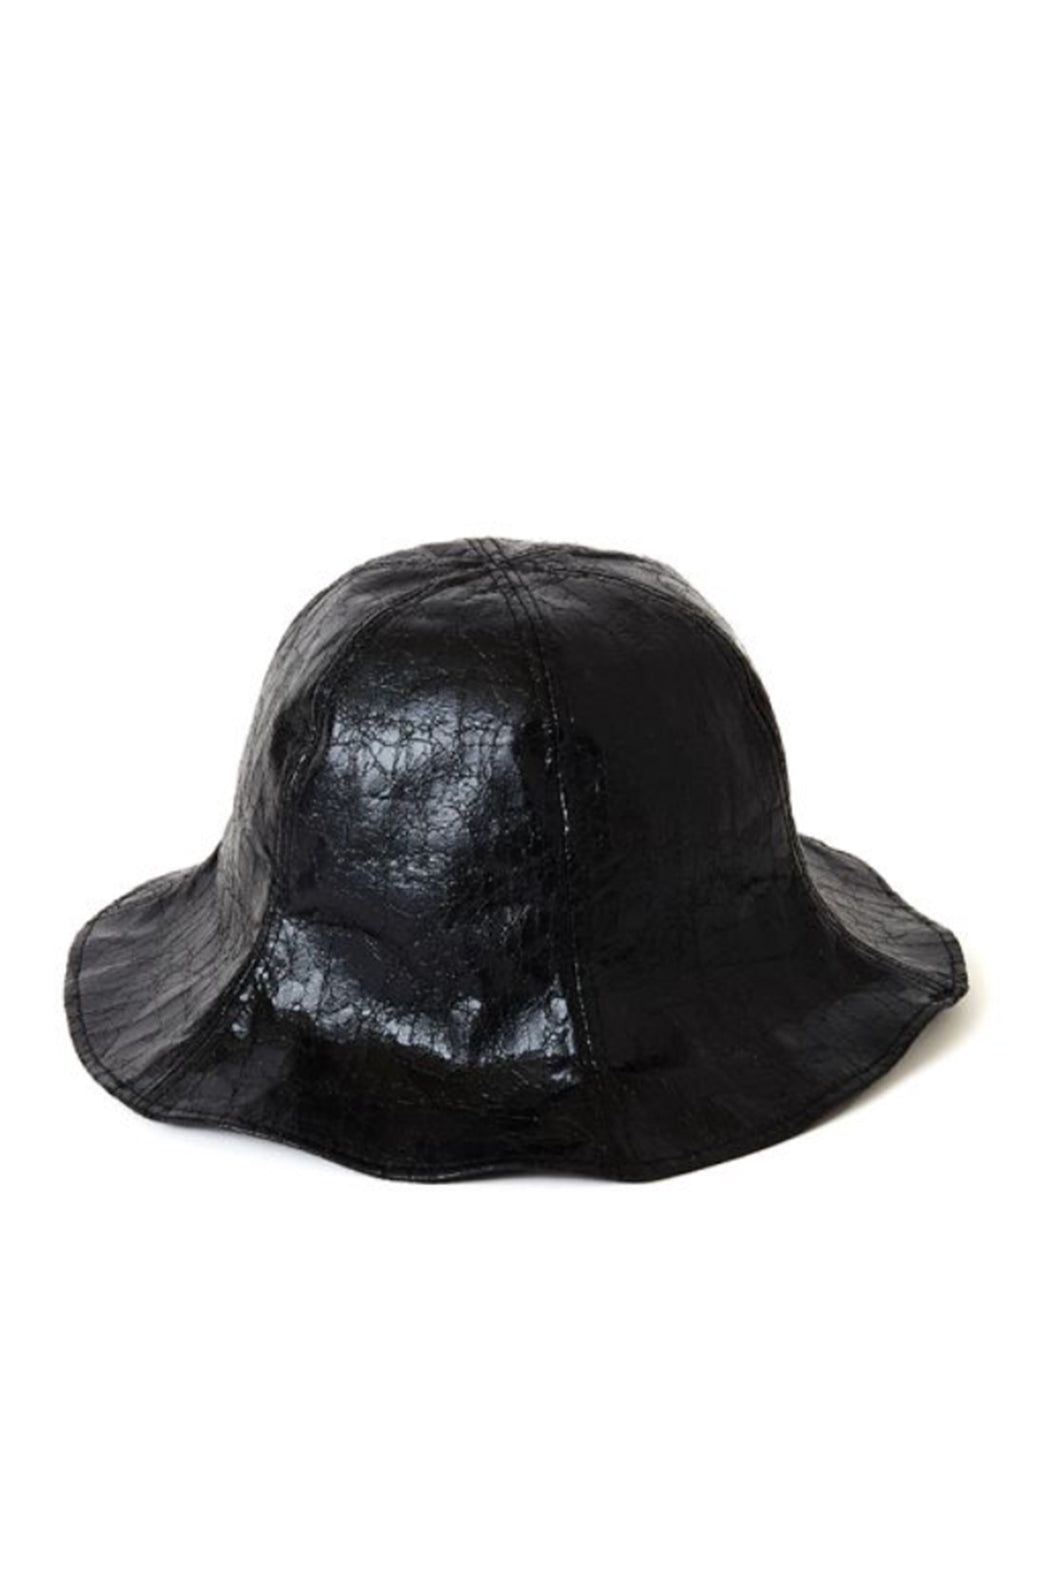 Crack Hat - Black